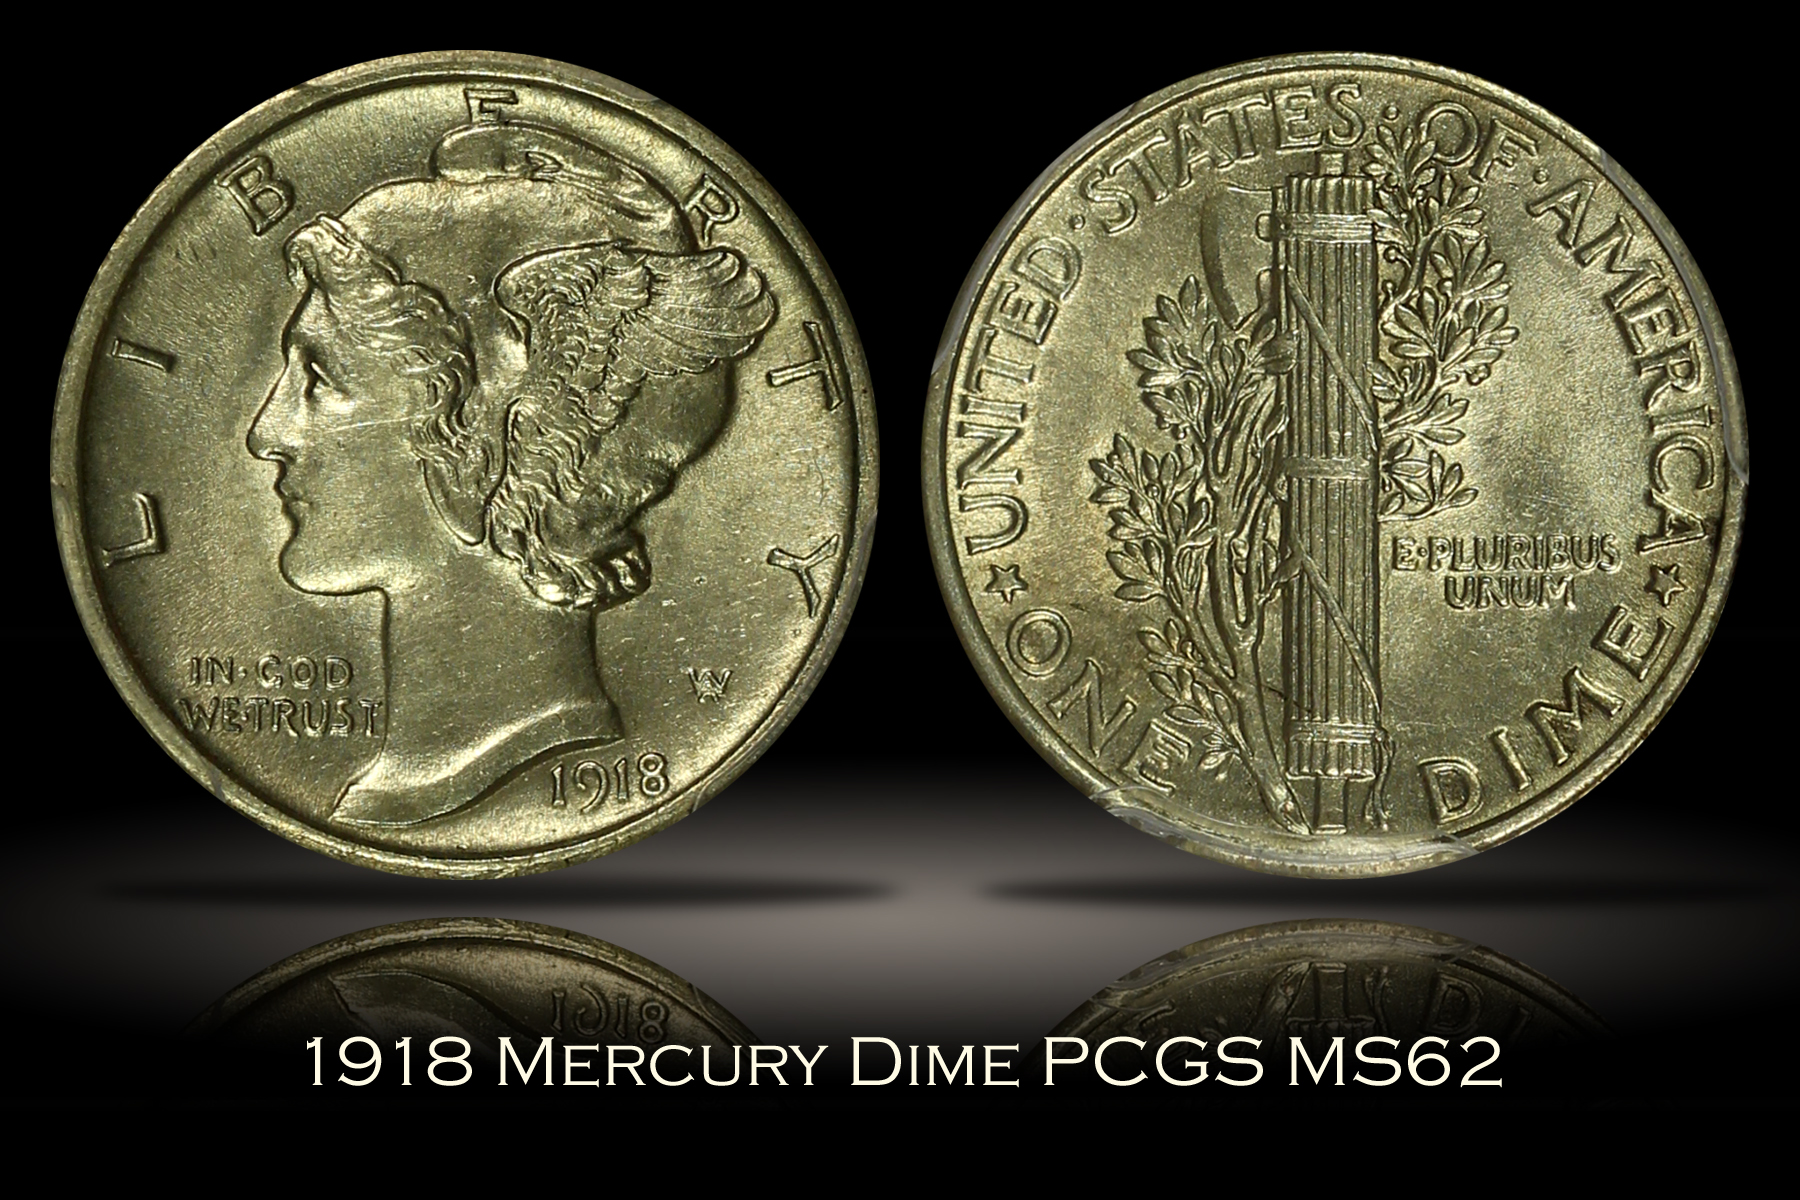 1918 Mercury Dime PCGS MS62